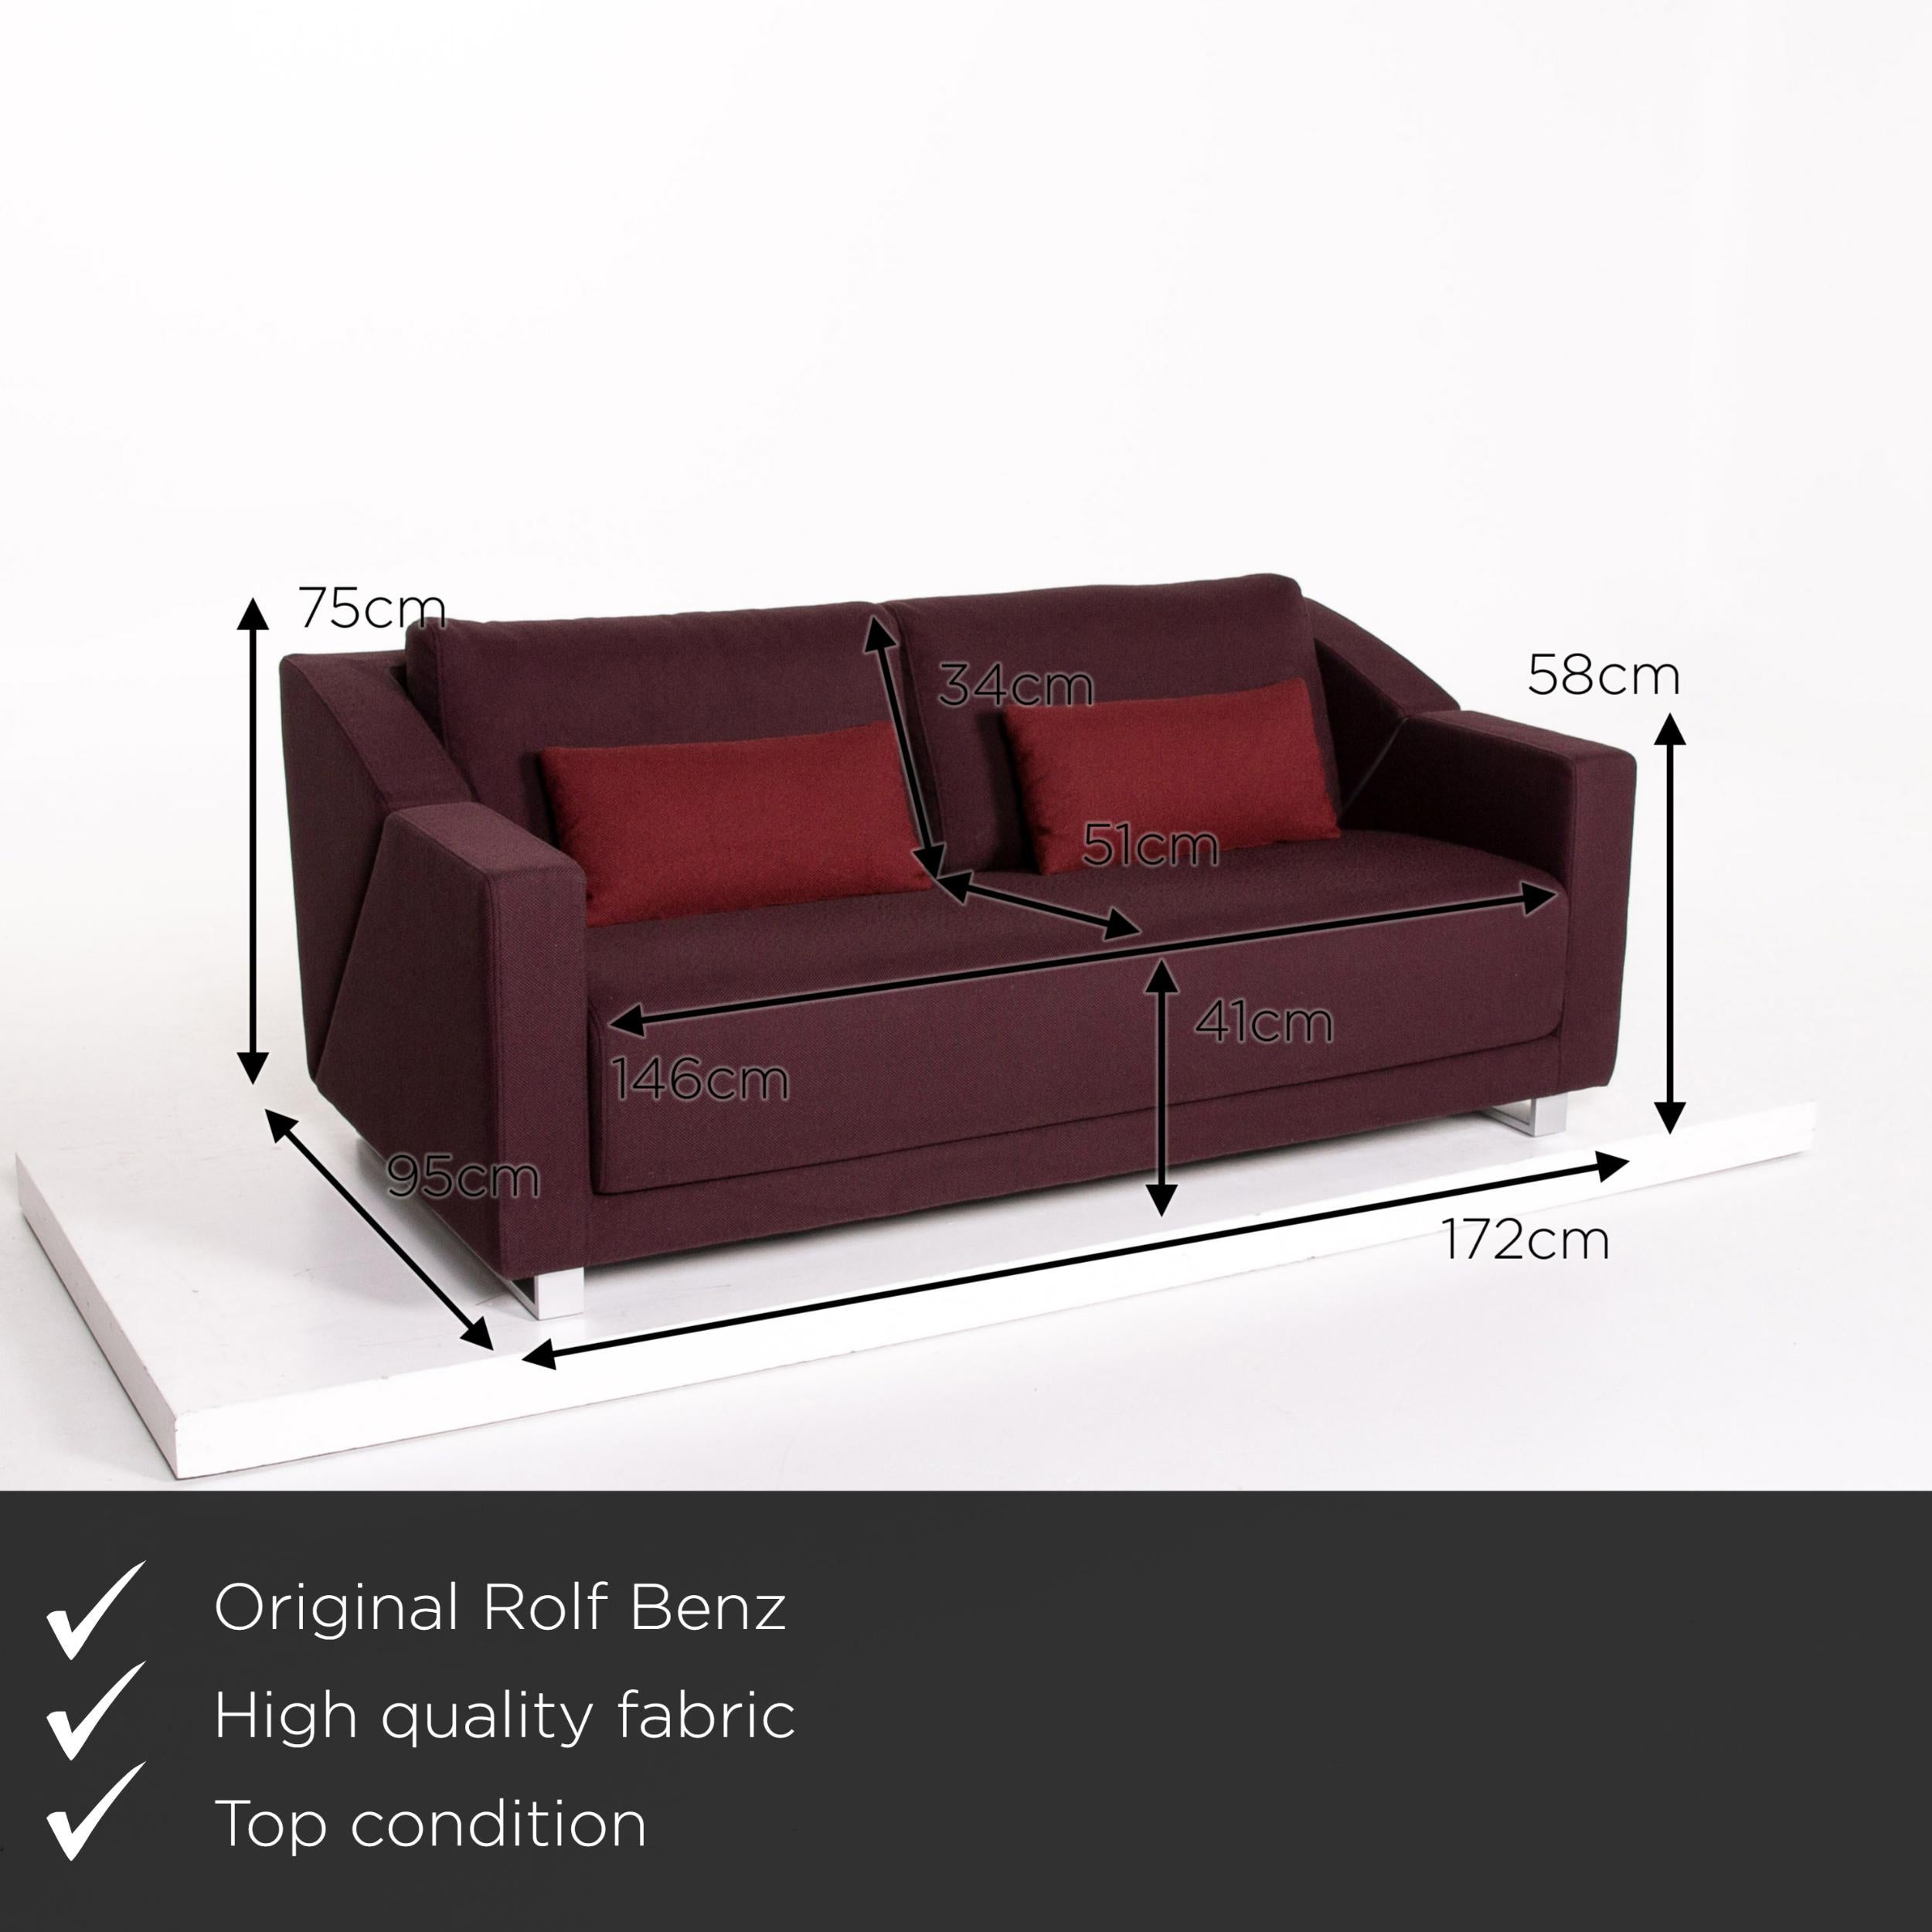 Rolf Benz 350 Fabric Sofa Aubergine Violet Three Seat Couch For Sale At 1stdibs